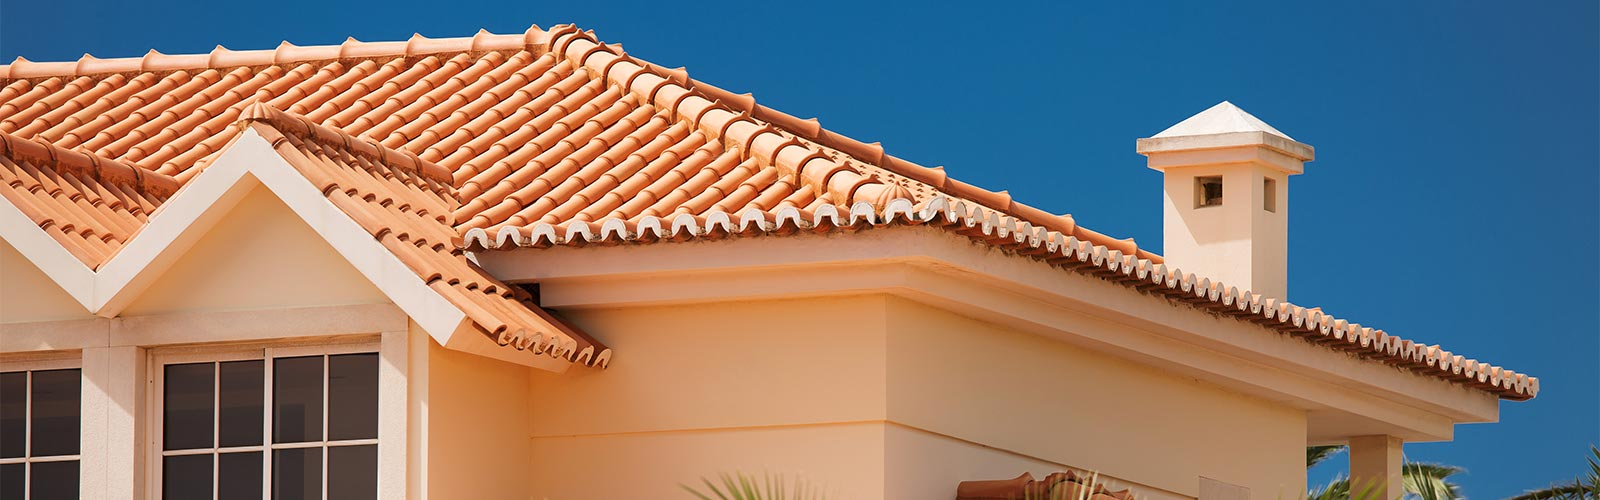 Spanish Tile Roof in South Florida